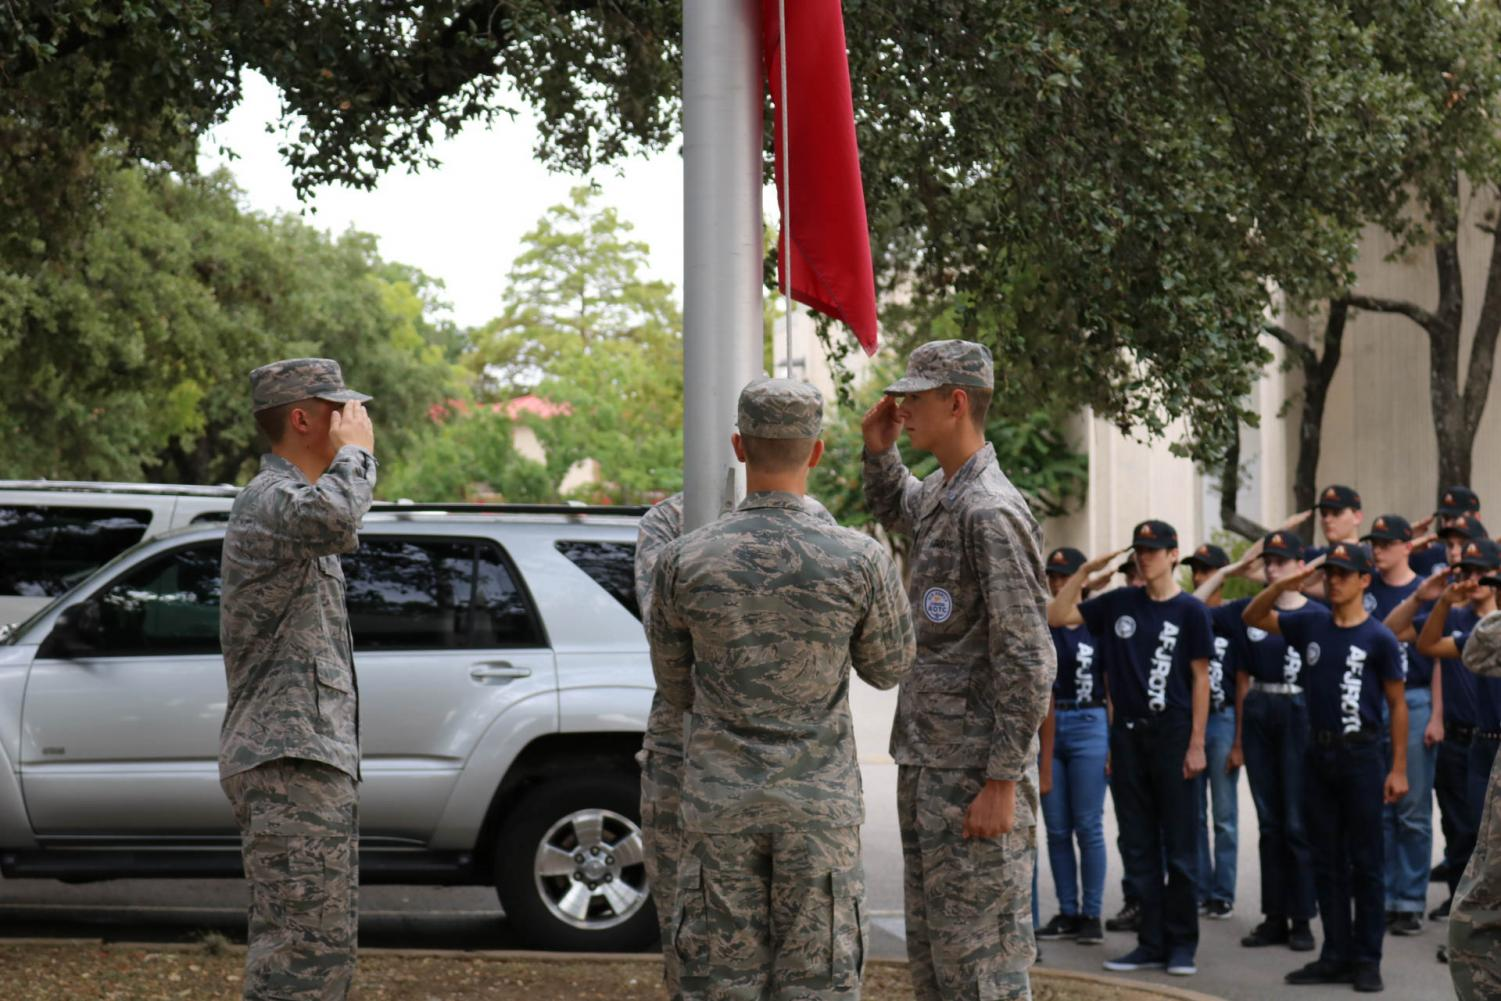 The+upperclassmen+cadets+lower+the+flags+as+the+freshmen+cadets+salute.+This+is+the+first+event+the+freshmen+are+doing+as+a+core.